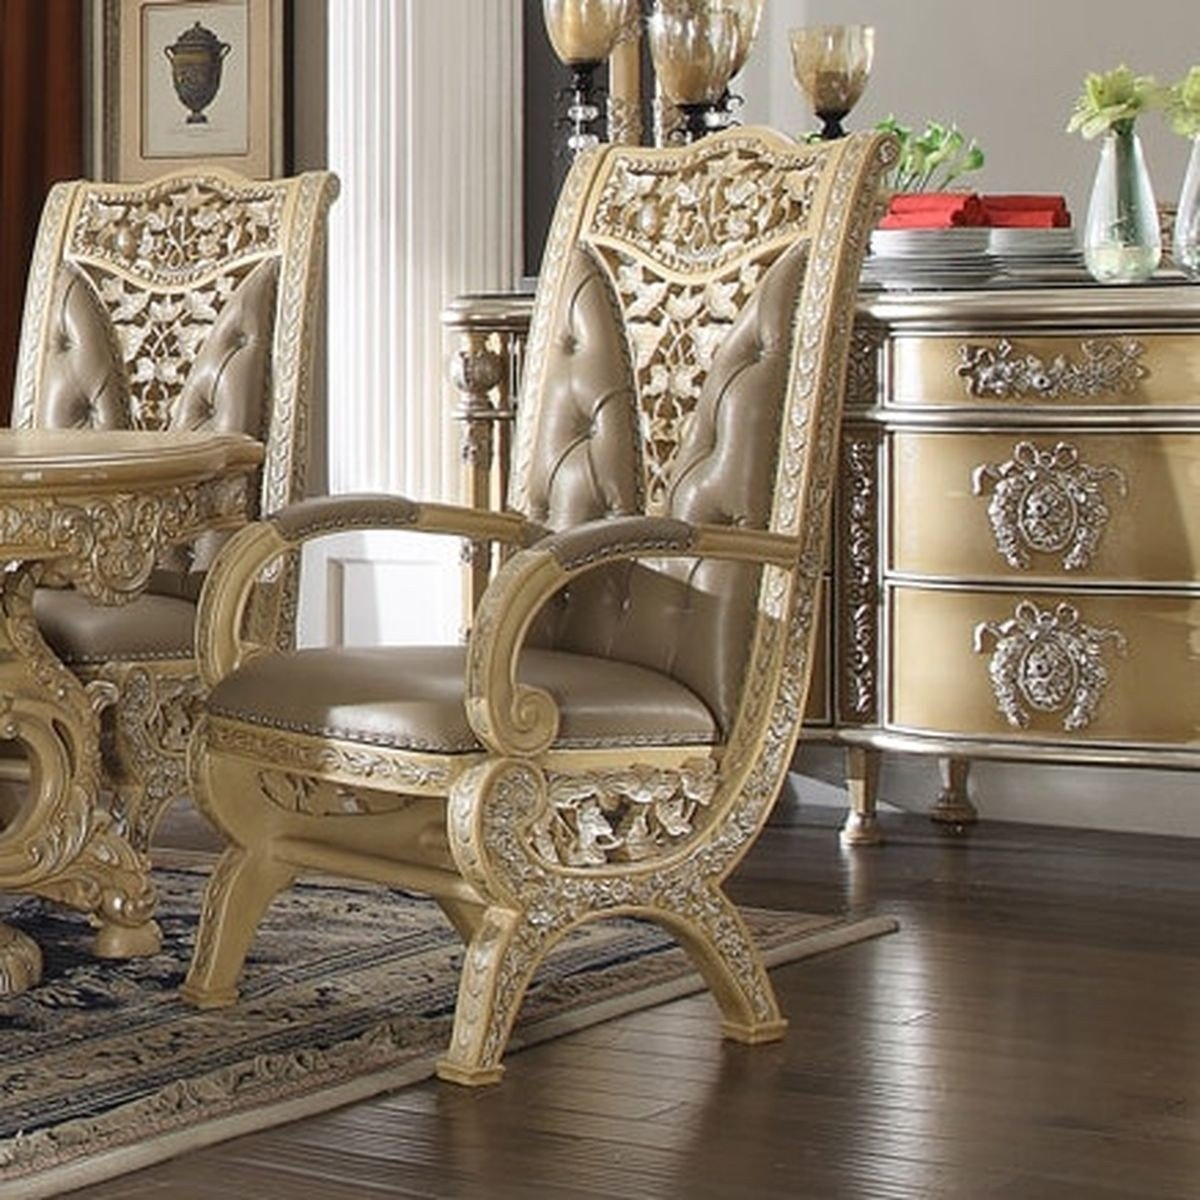 Traditional Classic HD-8015 Gilded Arm Chair in Beige by Homey Design